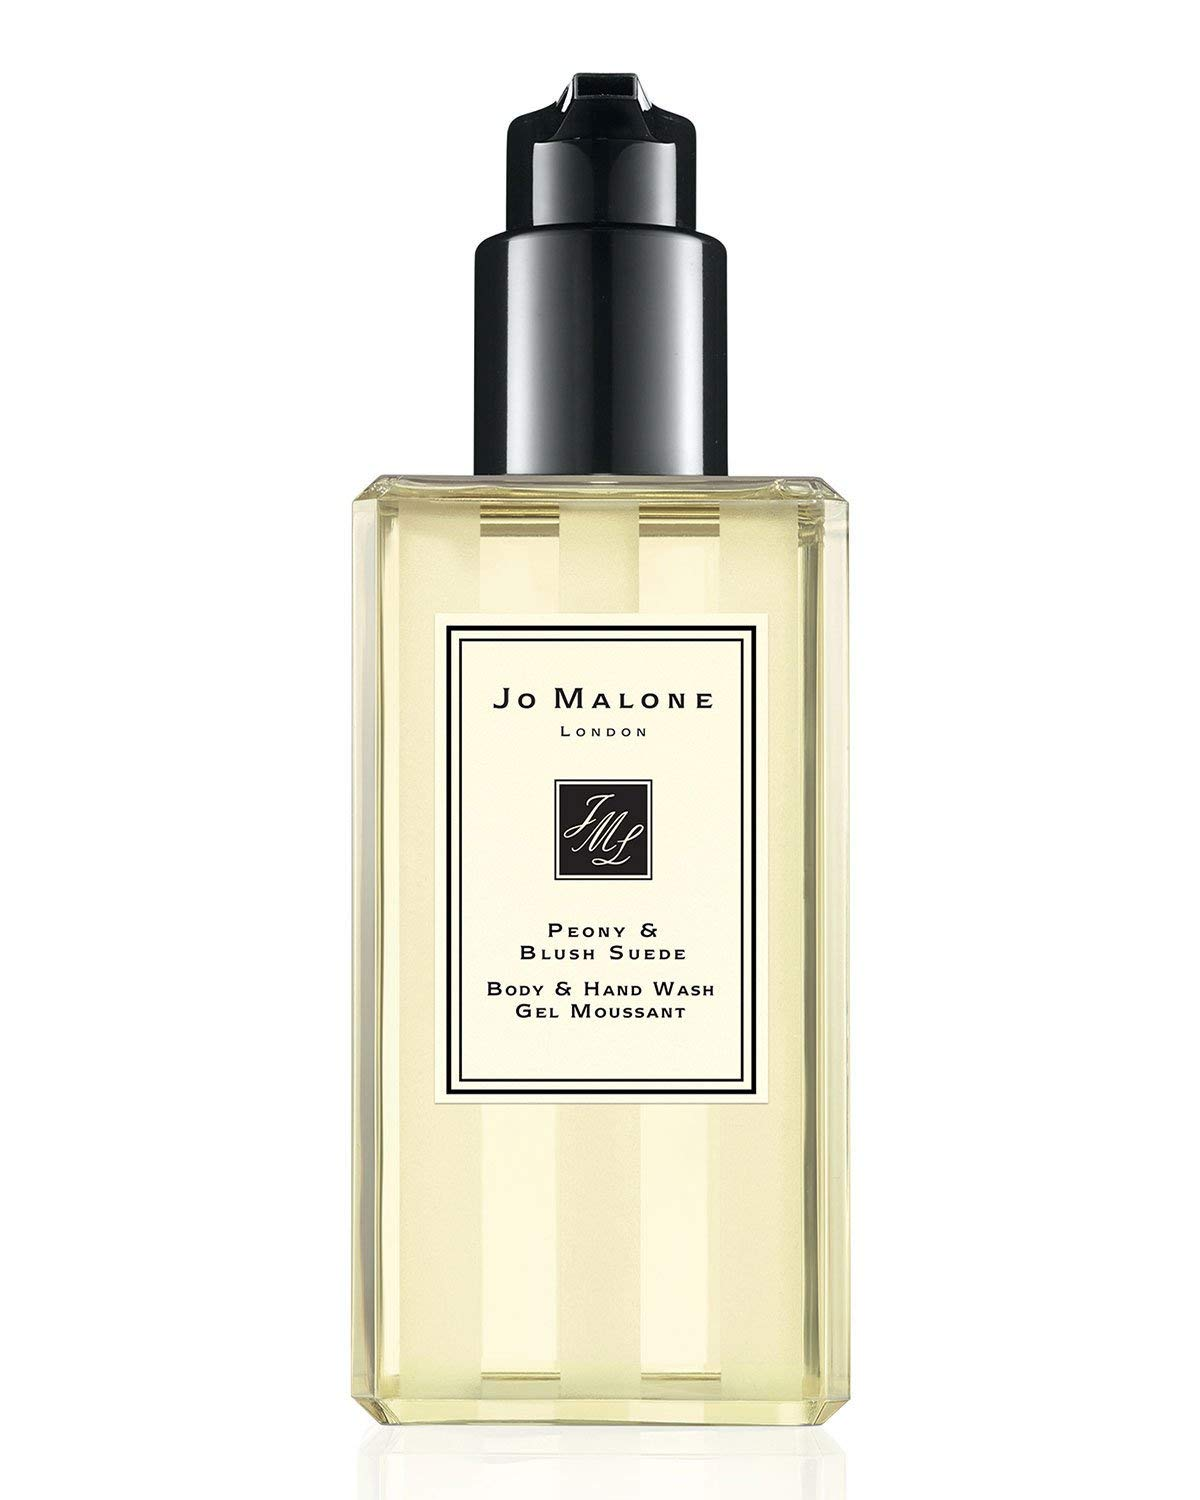 Brand New in Box Jo Malone London Peony & Blush Suede Body and Hand Wash/Shower Gel 8.5 oz